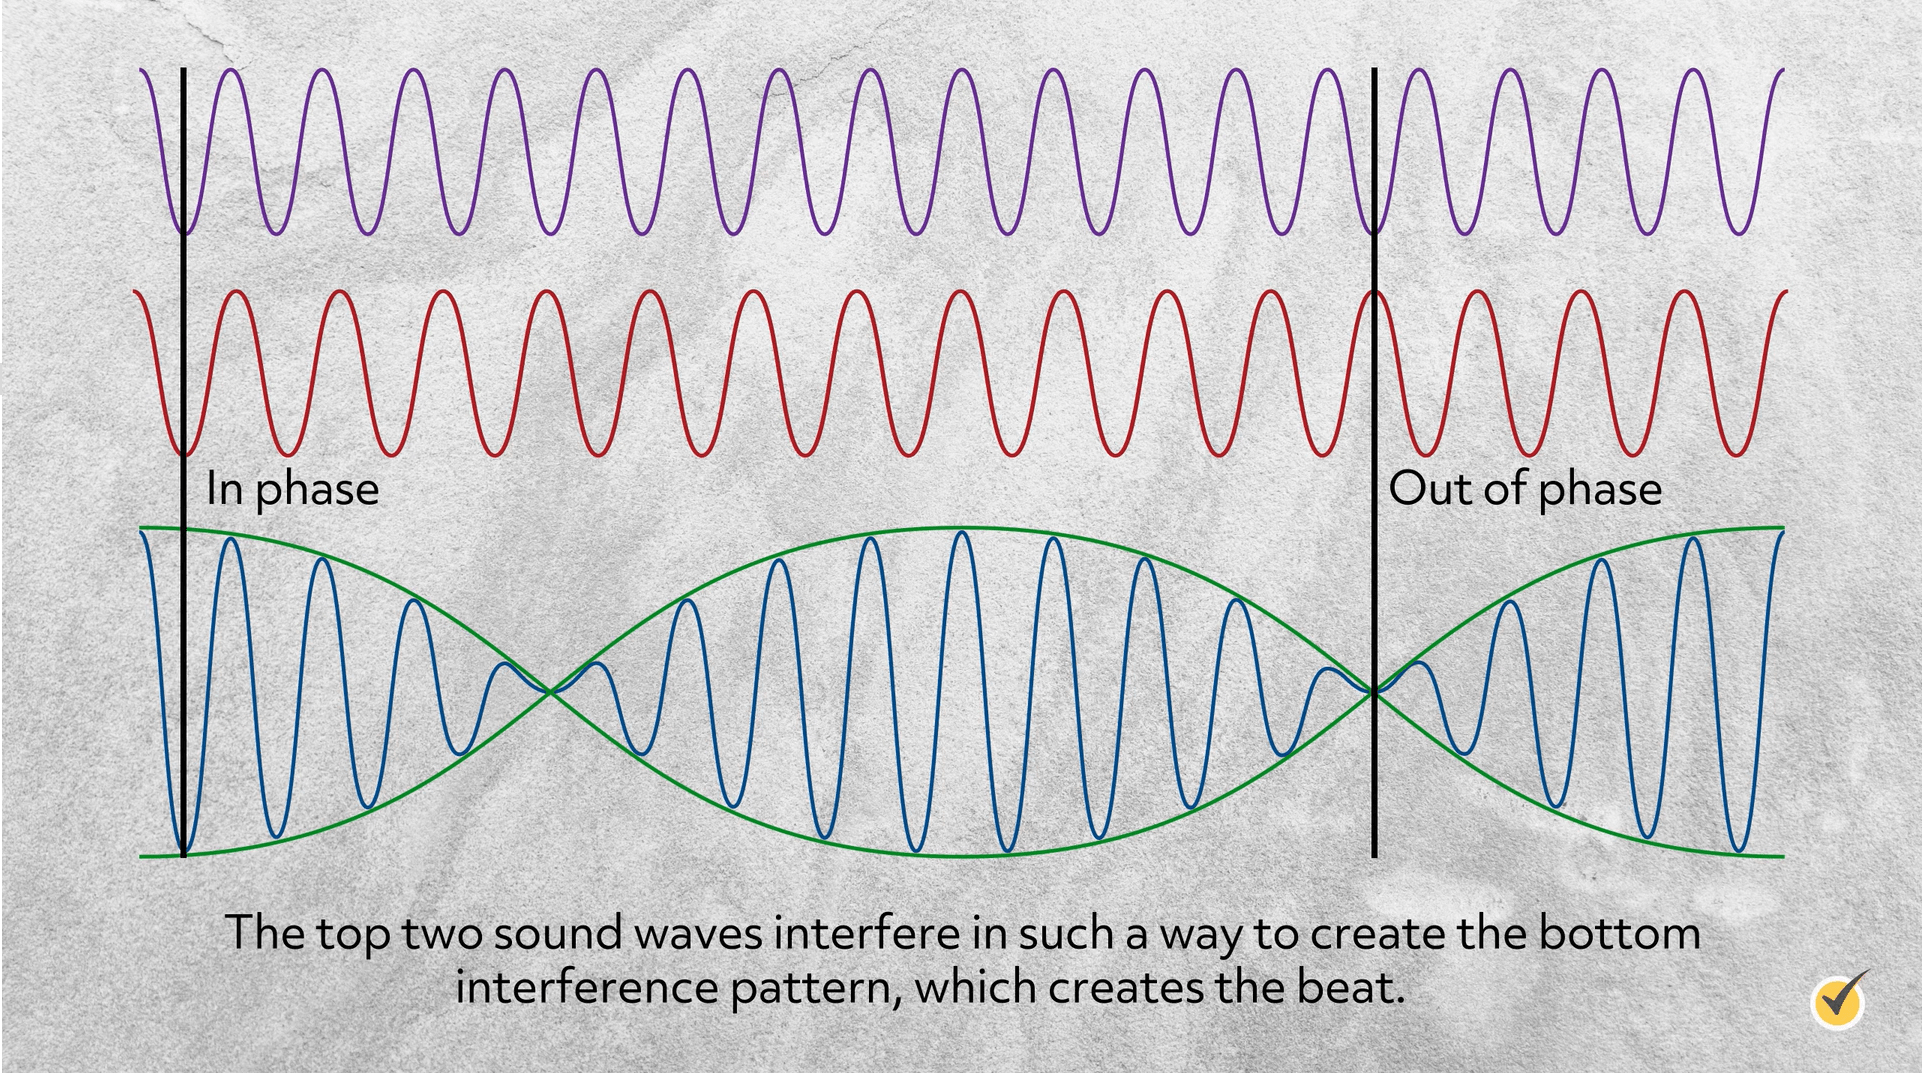 example of how sound waves create a beat. There is an 'in phase', and 'out of phase' that interfere in a way to create the pattern